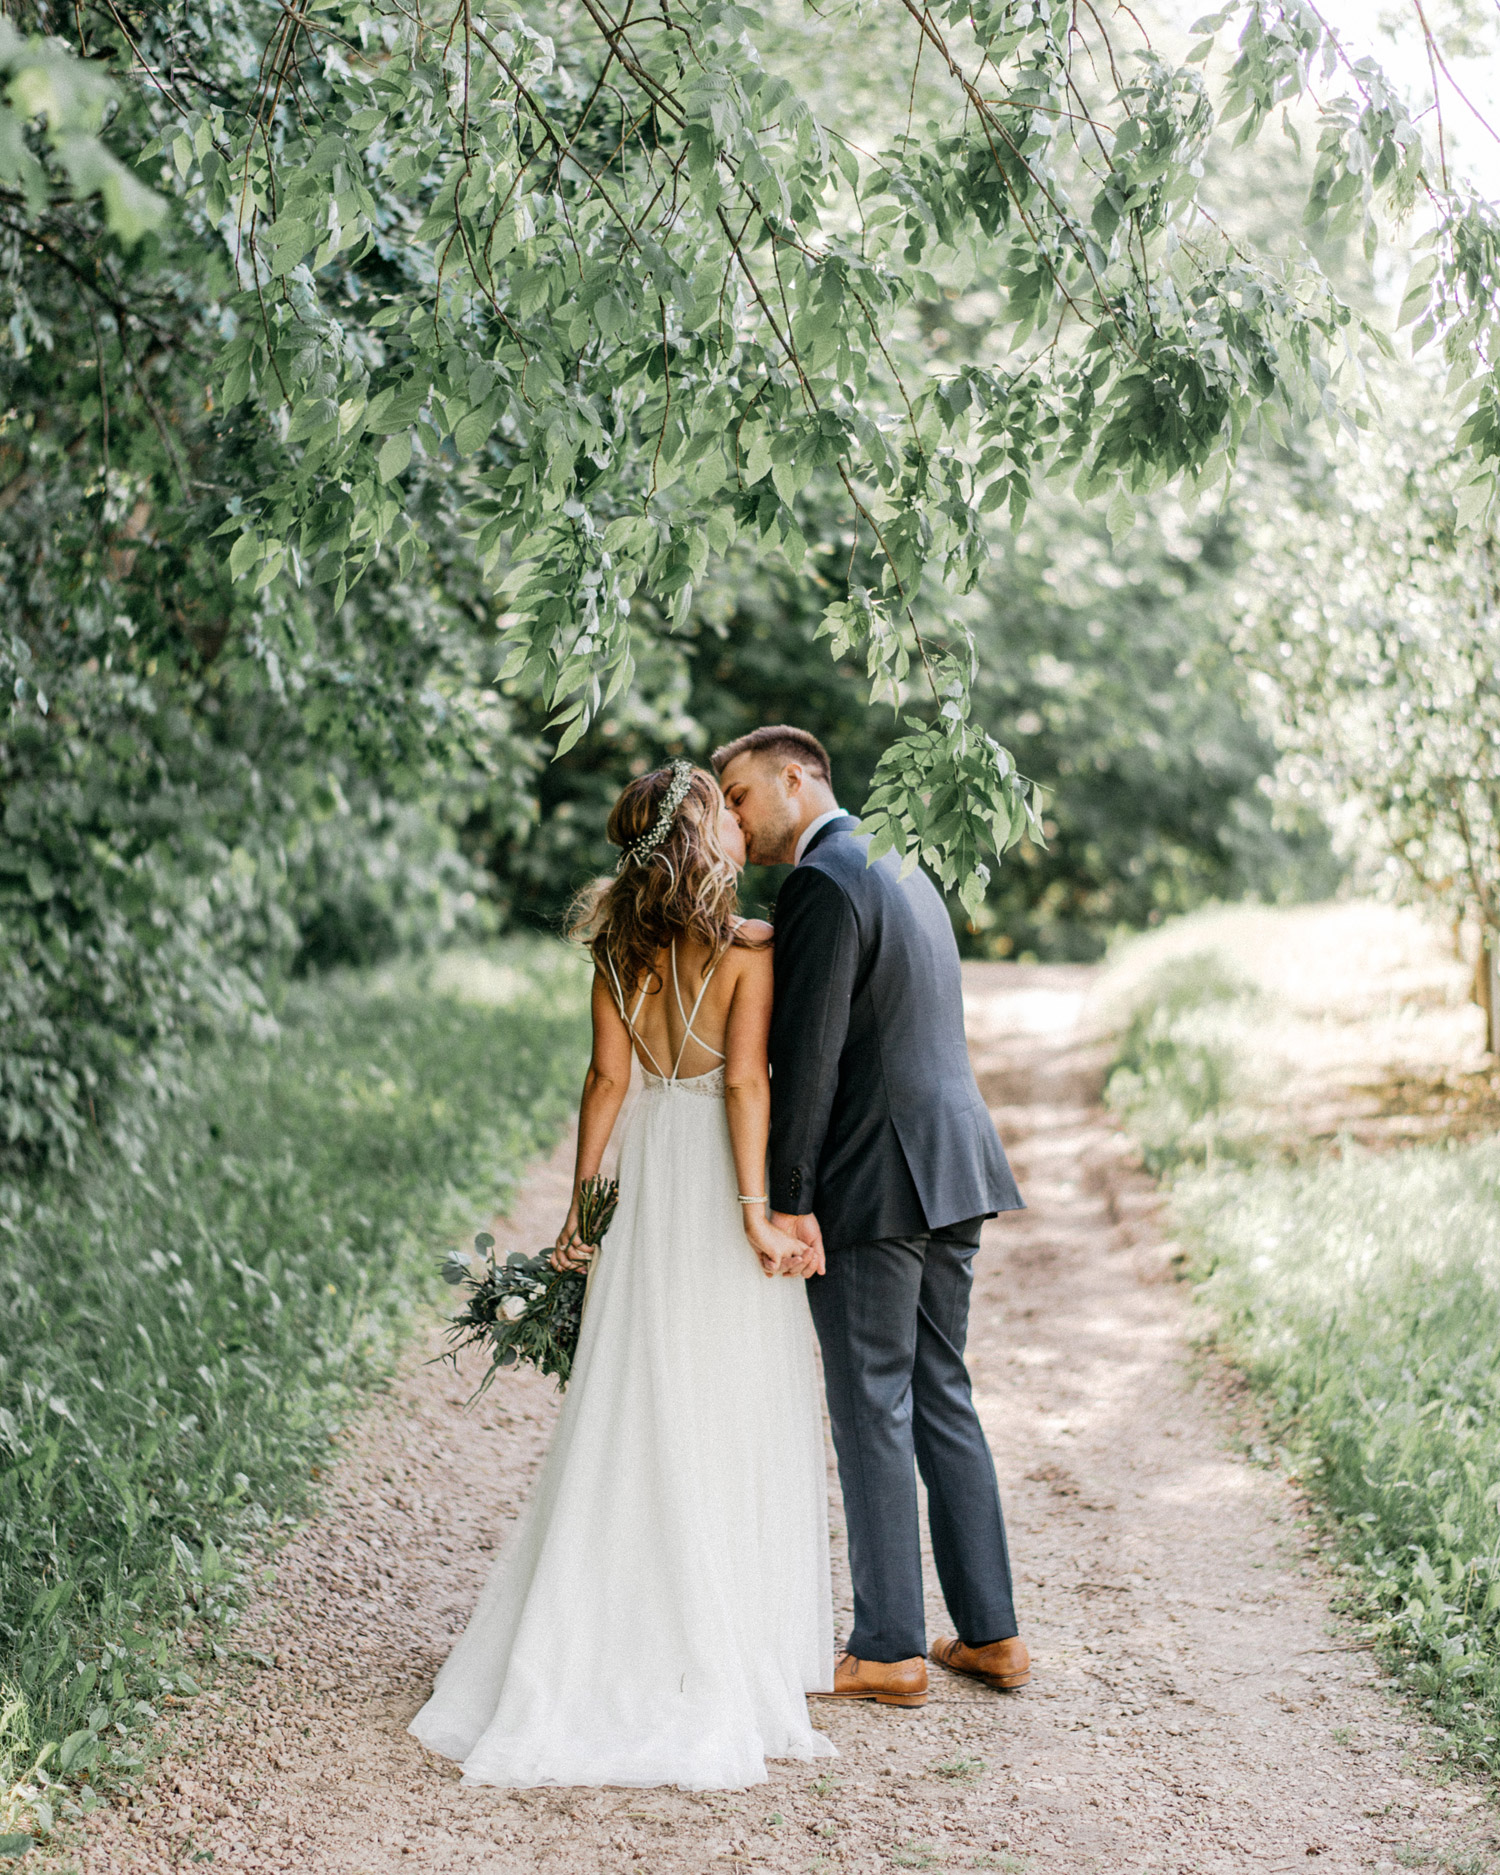 Bride and Groom Portrait at Minnetonka Orchards by geneoh photography